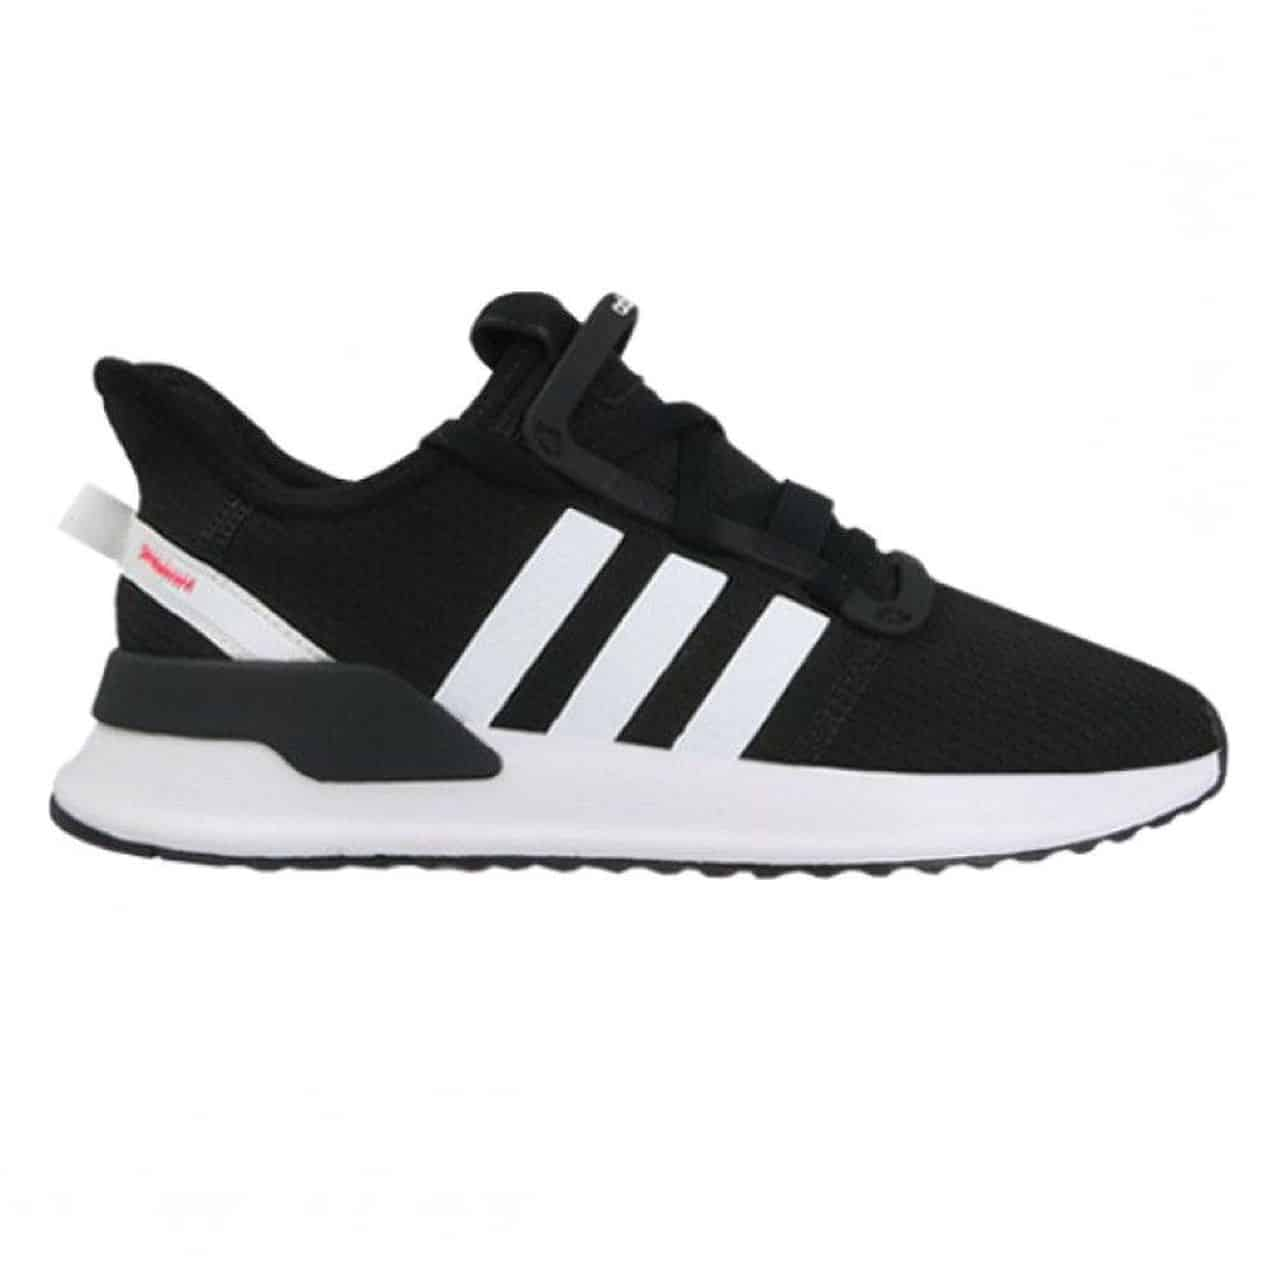 ADIDASI ORIGINALI ADIDAS U_PATH RUN J - G28108